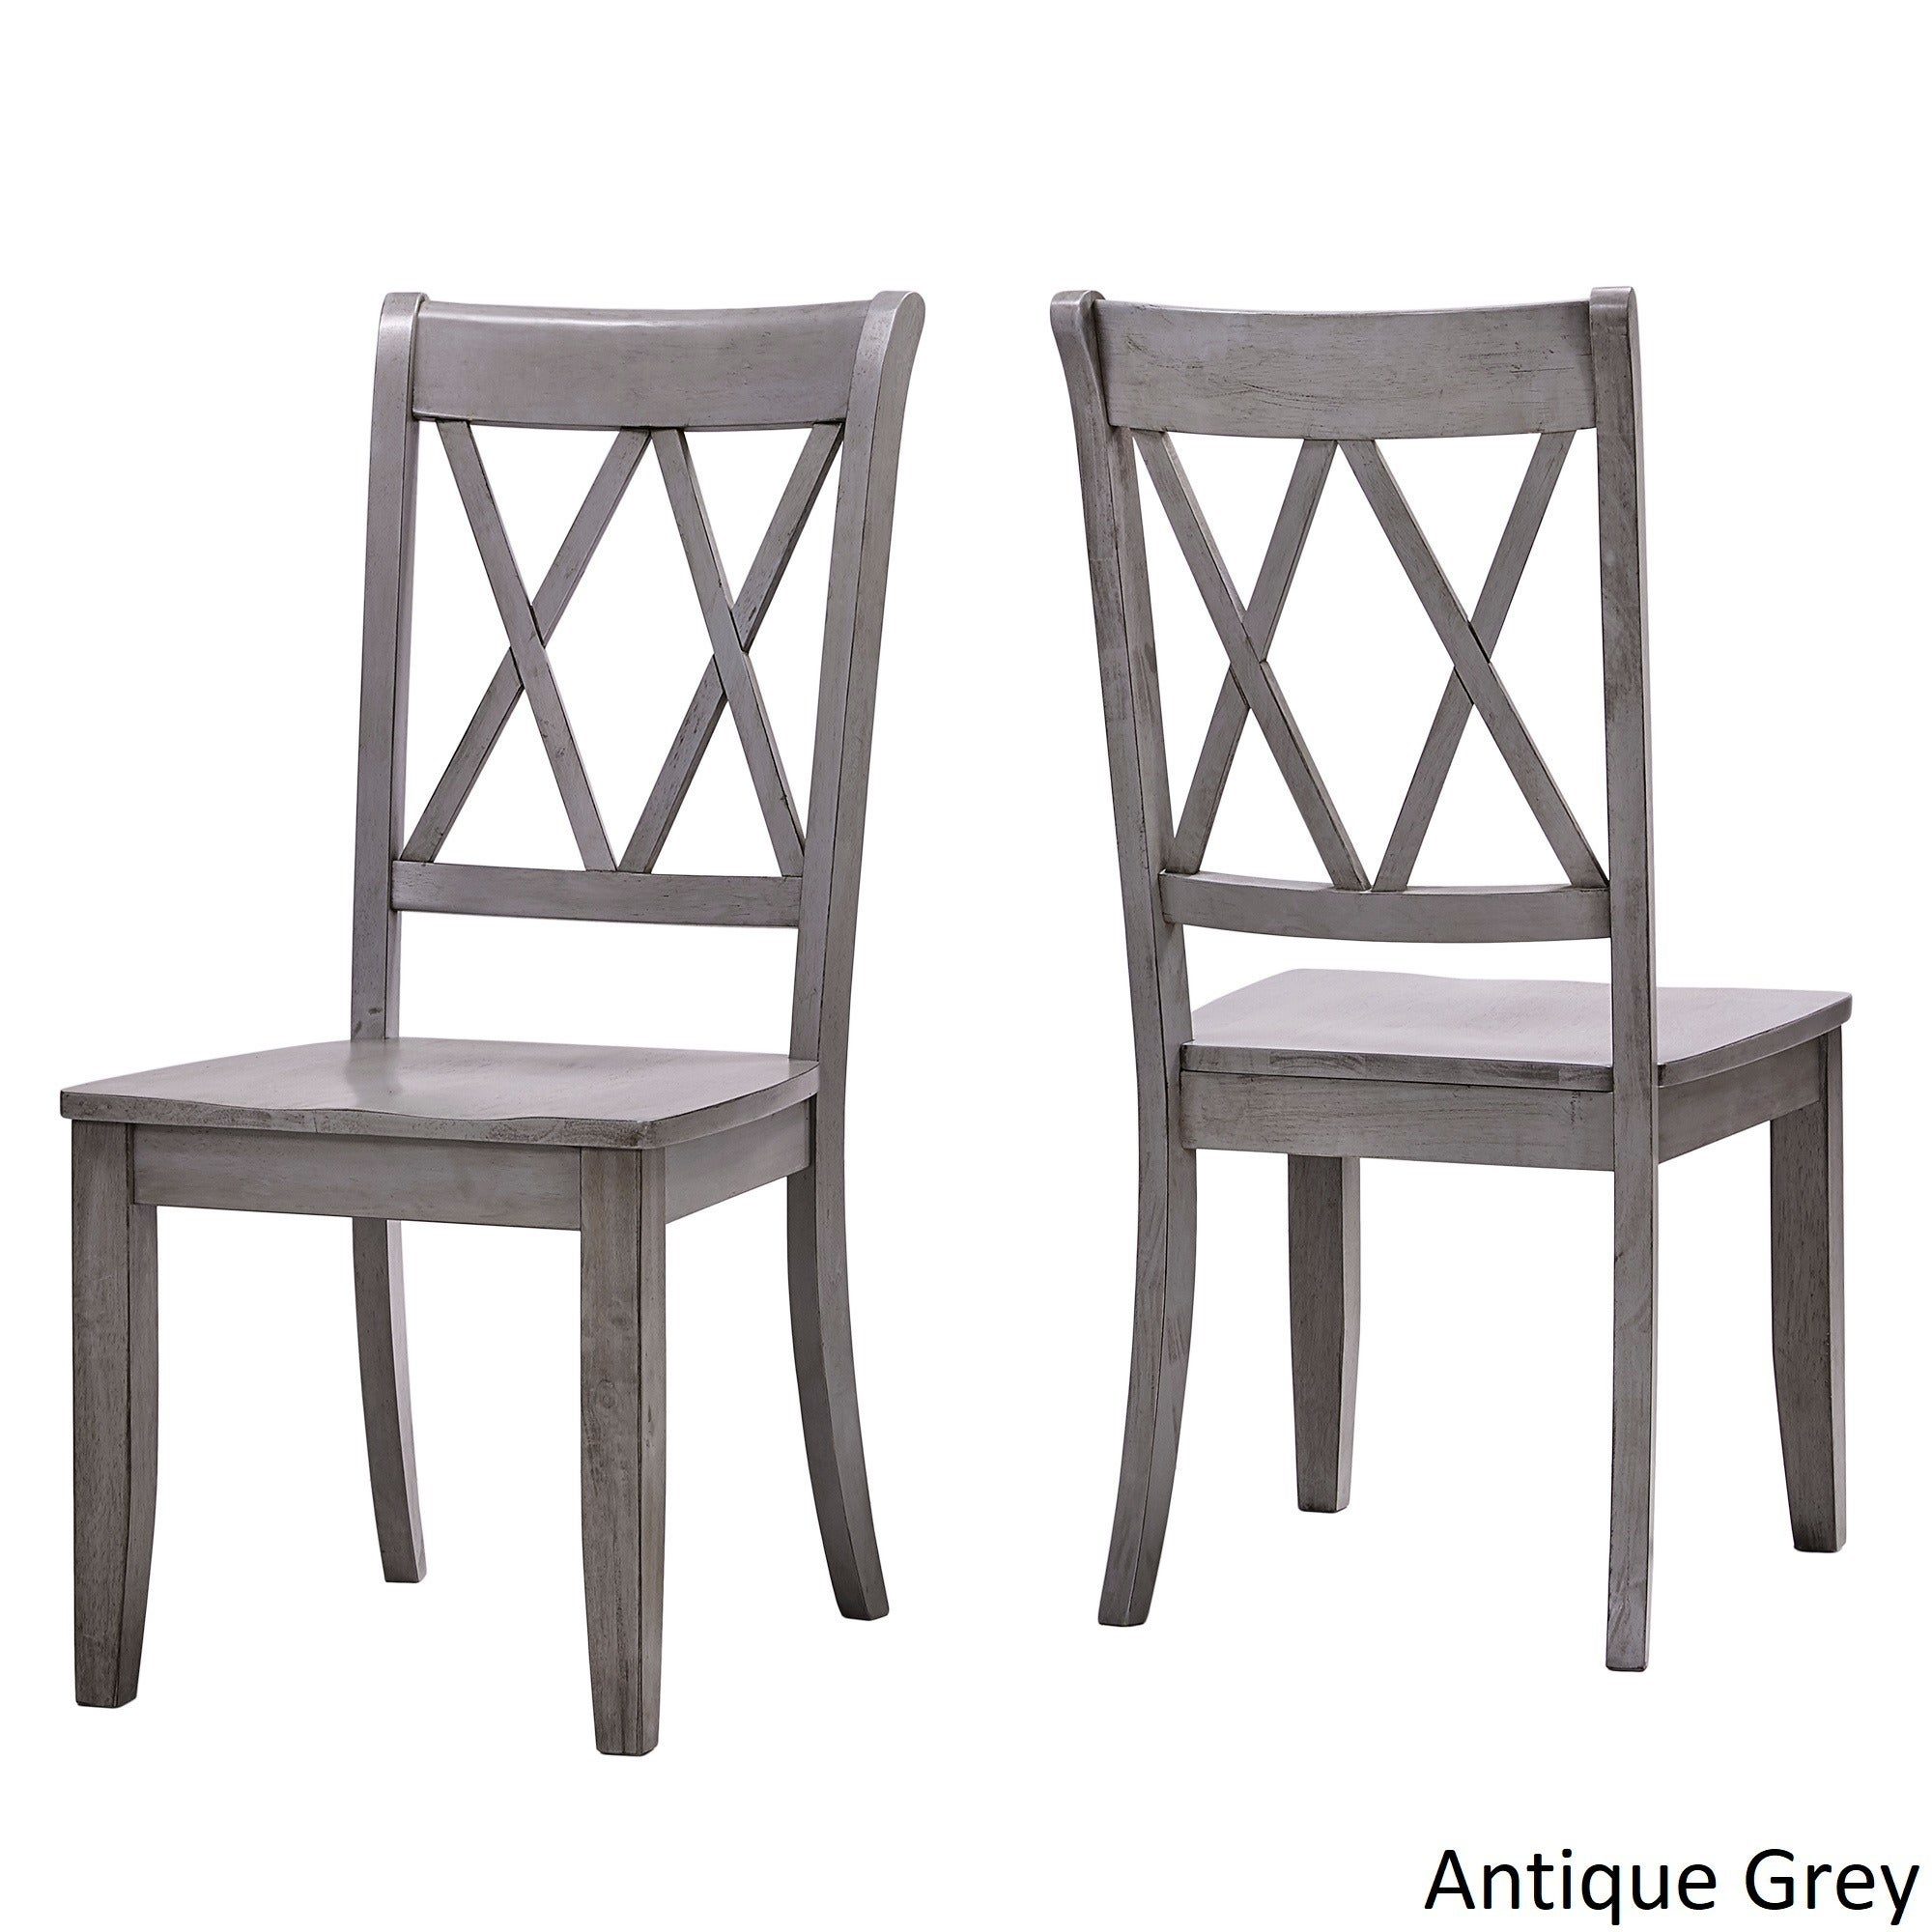 Shop Eleanor Double X Back Wood Dining Chair (Set of 2) by iNSPIRE Q Classic - Free Shipping Today - Overstock - 13469140  sc 1 st  Overstock.com & Shop Eleanor Double X Back Wood Dining Chair (Set of 2) by iNSPIRE Q ...